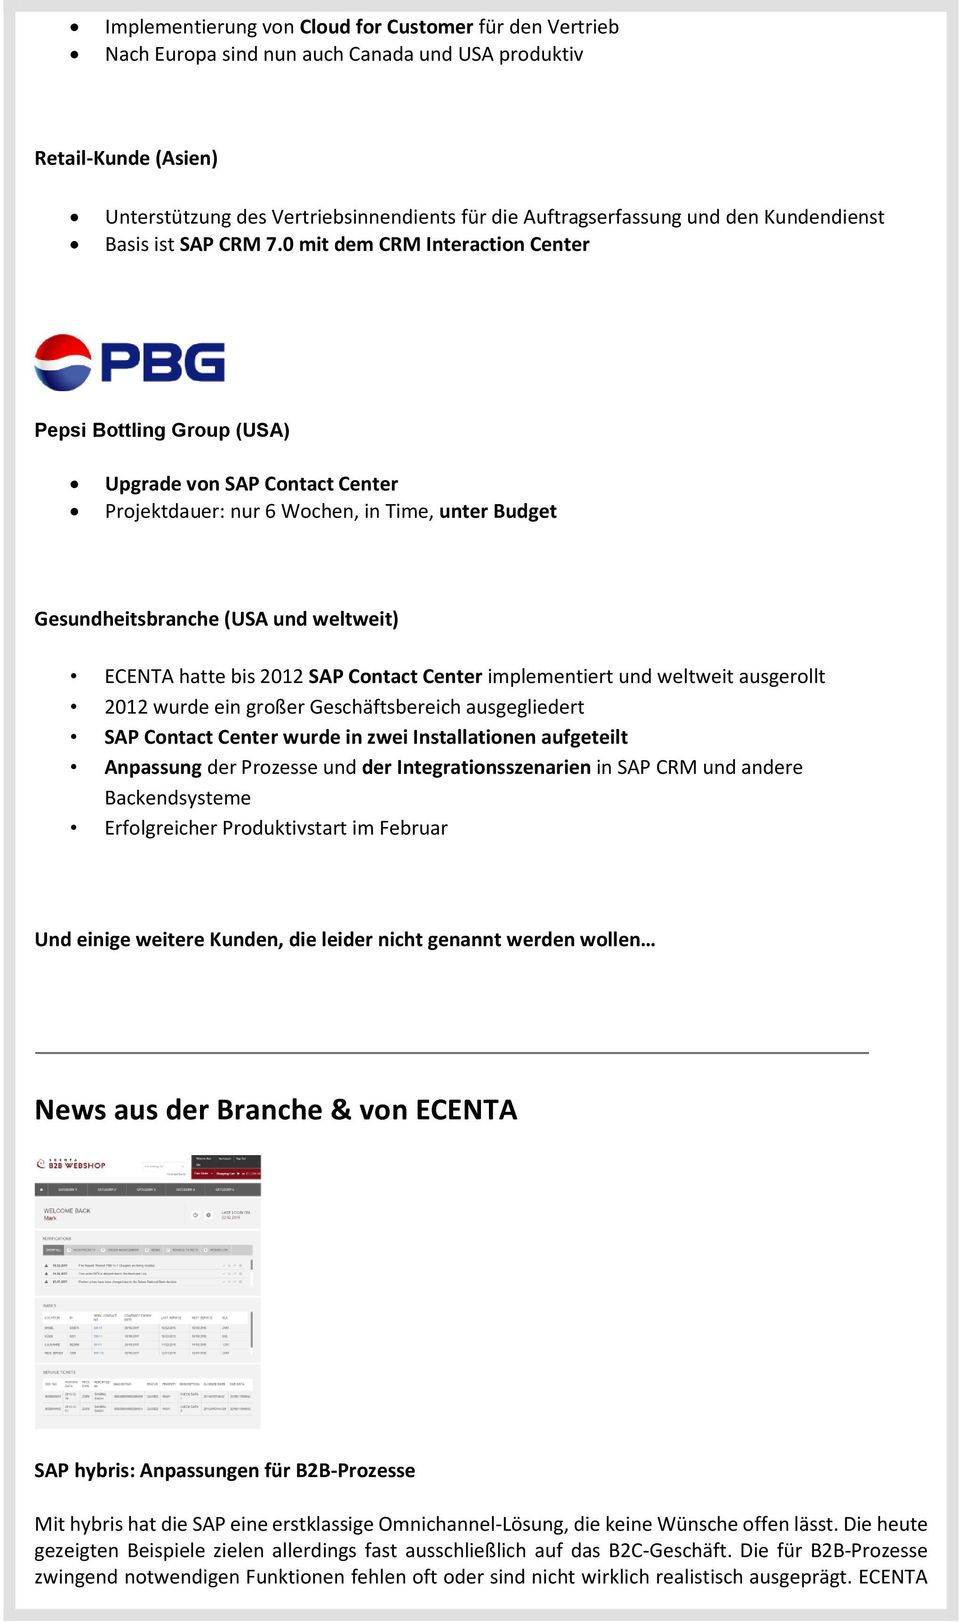 0 mit dem CRM Interaction Center Pepsi Bottling Group (USA) Upgrade von SAP Contact Center Projektdauer: nur 6 Wochen, in Time, unter Budget Gesundheitsbranche (USA und weltweit) ECENTA hatte bis